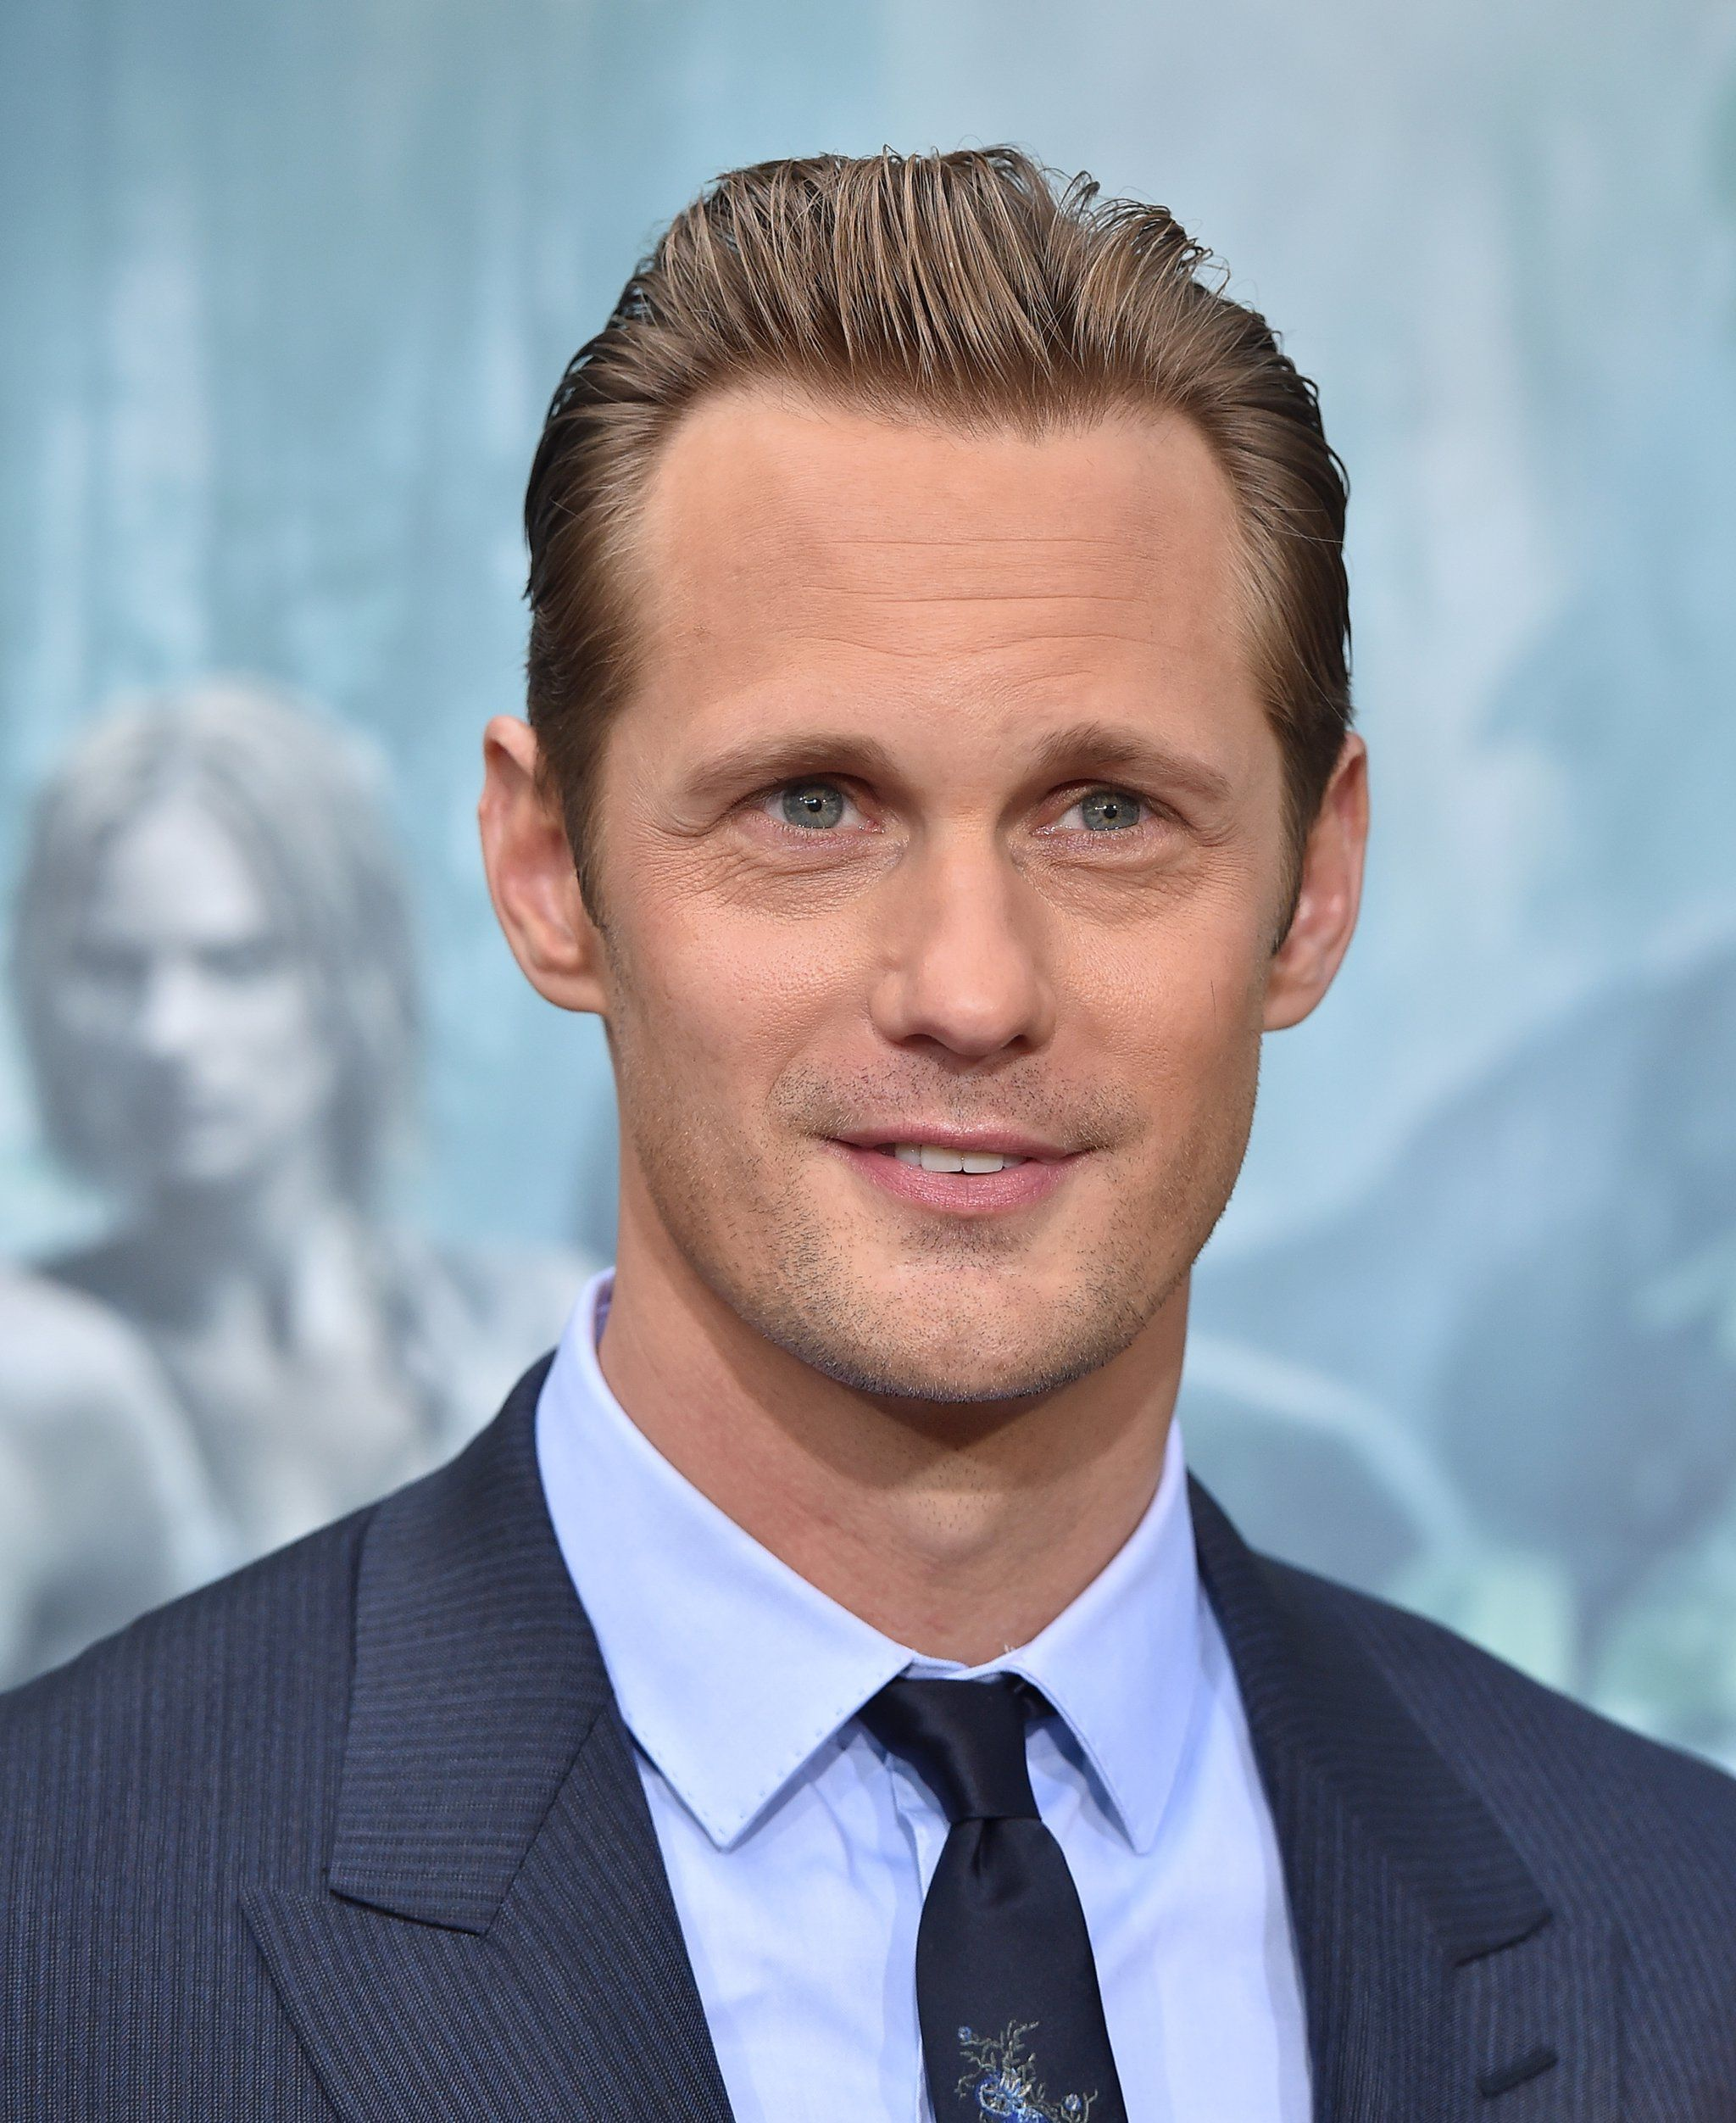 24 Pictures That Will Remind You Just How Handsome Alexander Skarsgard Is